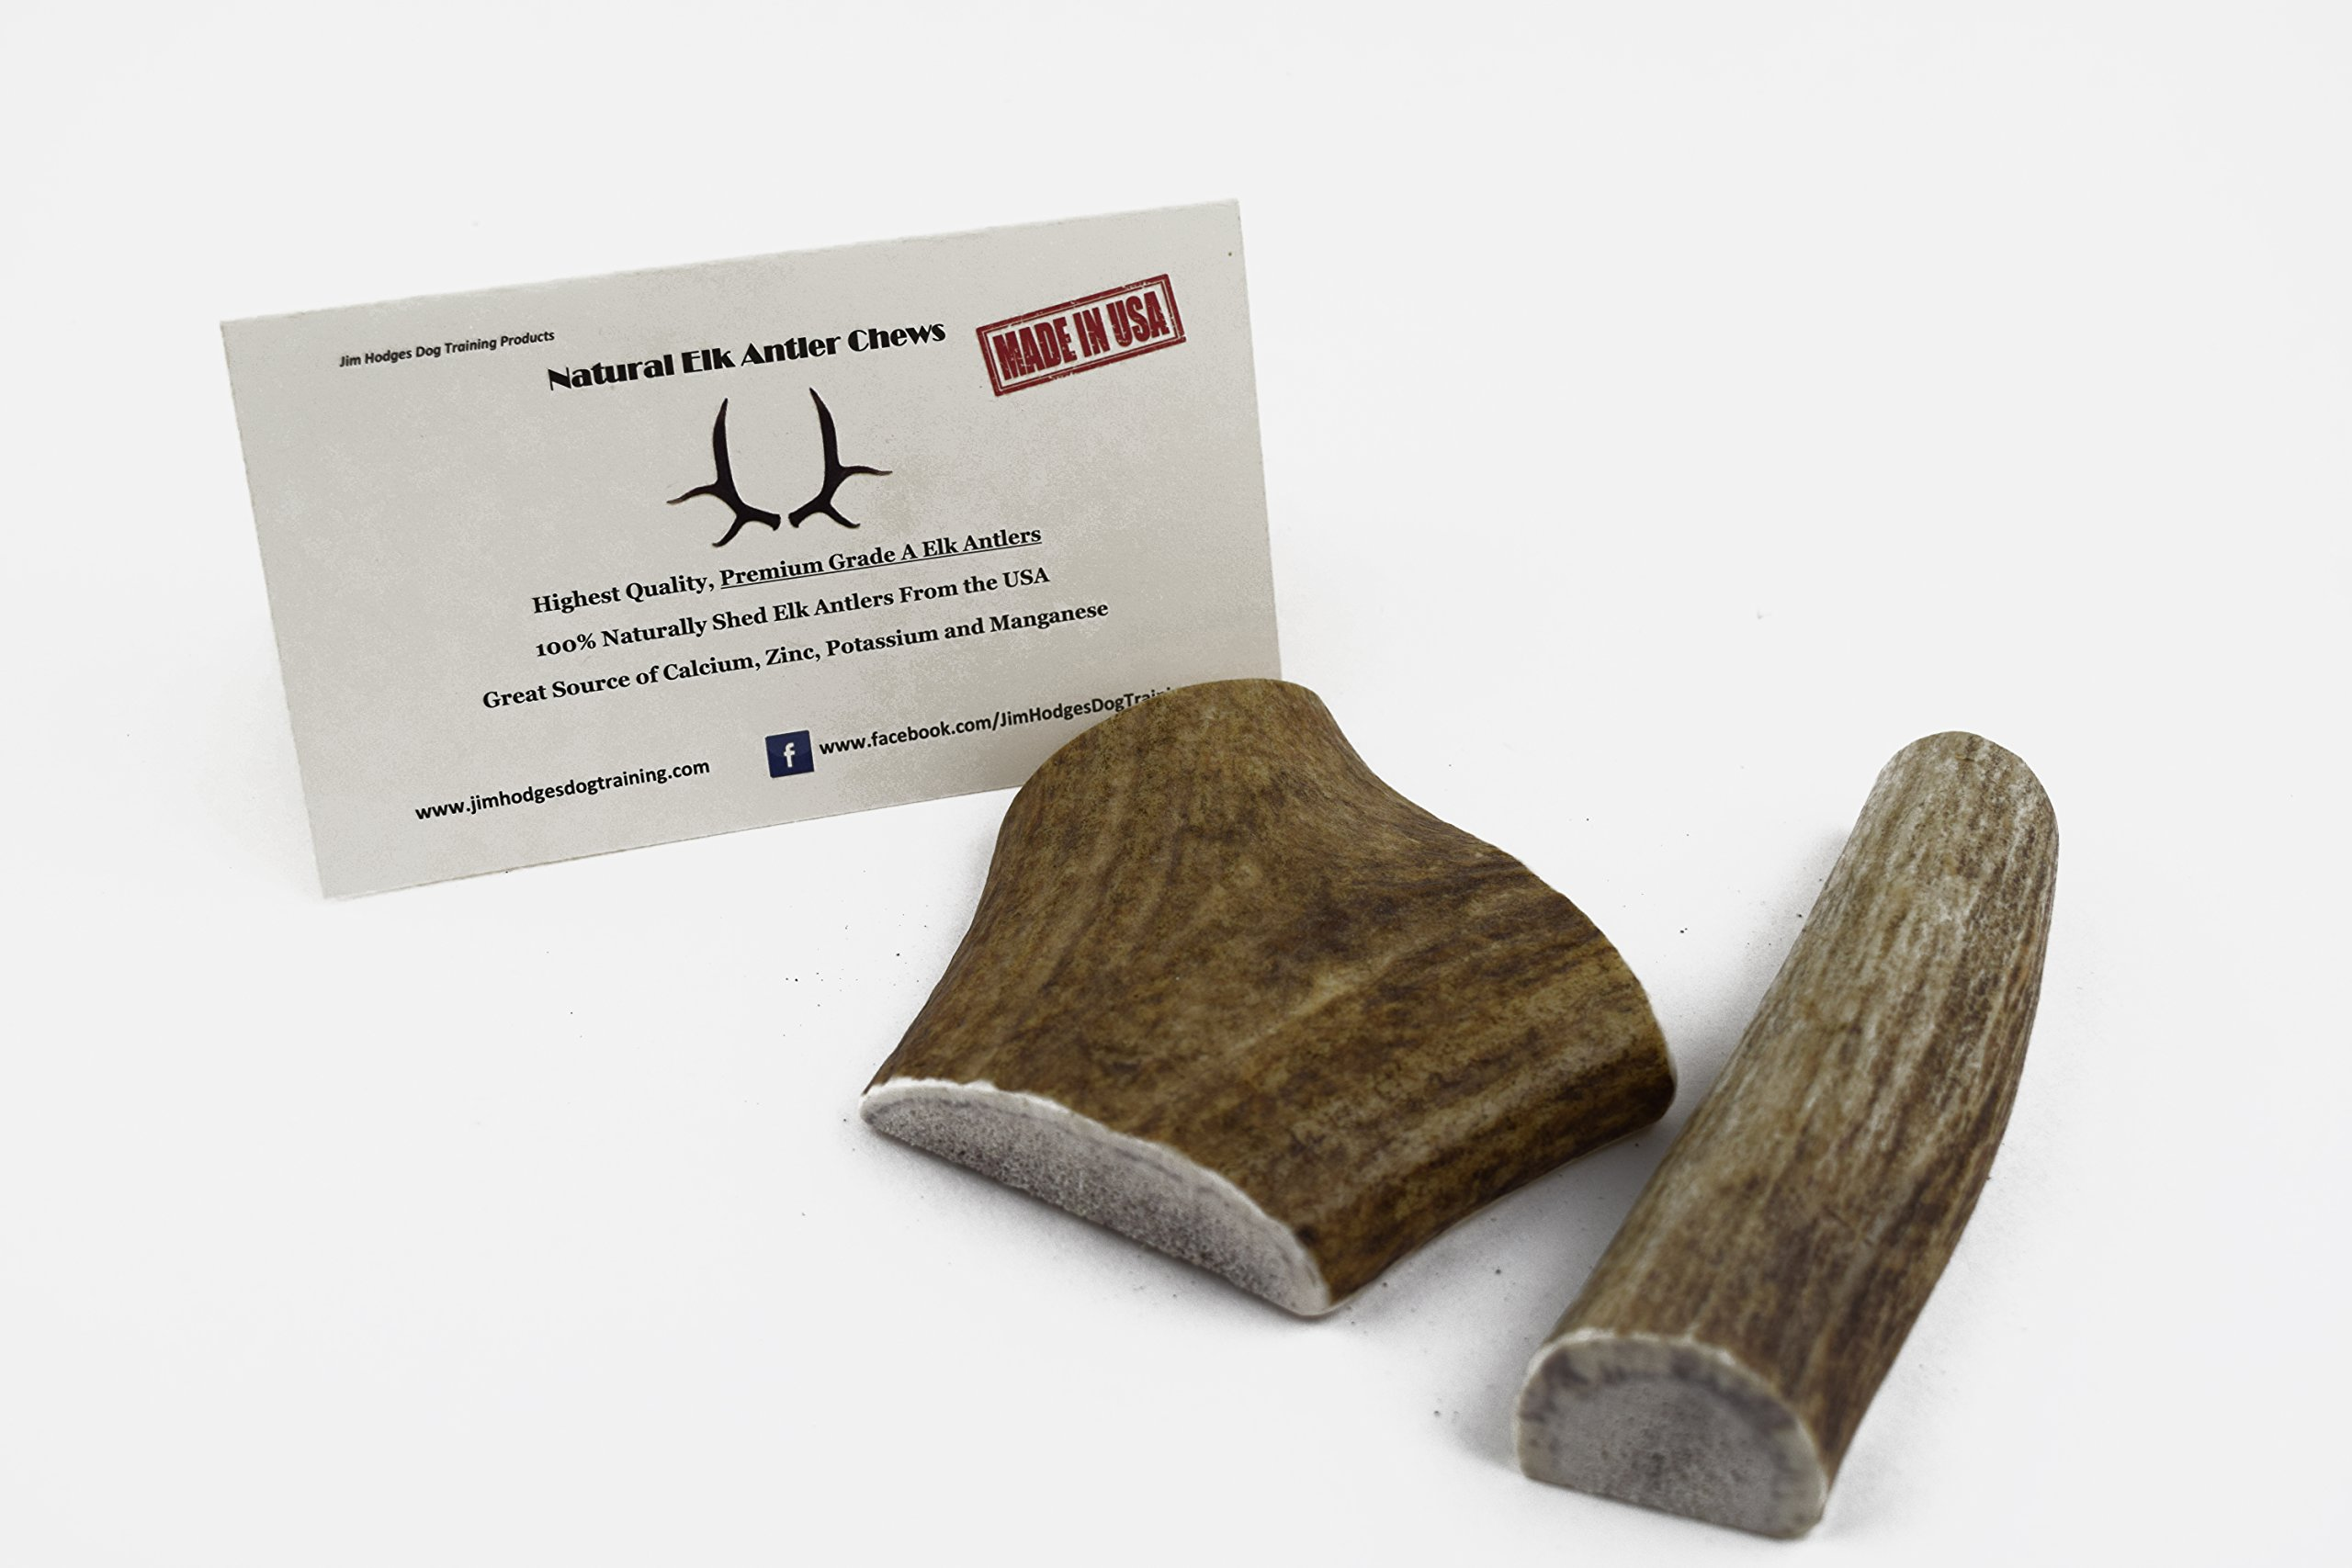 JimHodgesDogTraining Brand - Grade A Premium Quality Elk Antler Dog Chews - Small Split 2 Pack - Natural Alternative to Chew Toys, Bully Sticks, Bones, Rawhides, Himalayan, Jerky Treats - Made in USA by JimHodgesDogTraining - Grade A Antler Dog Chews (Image #7)